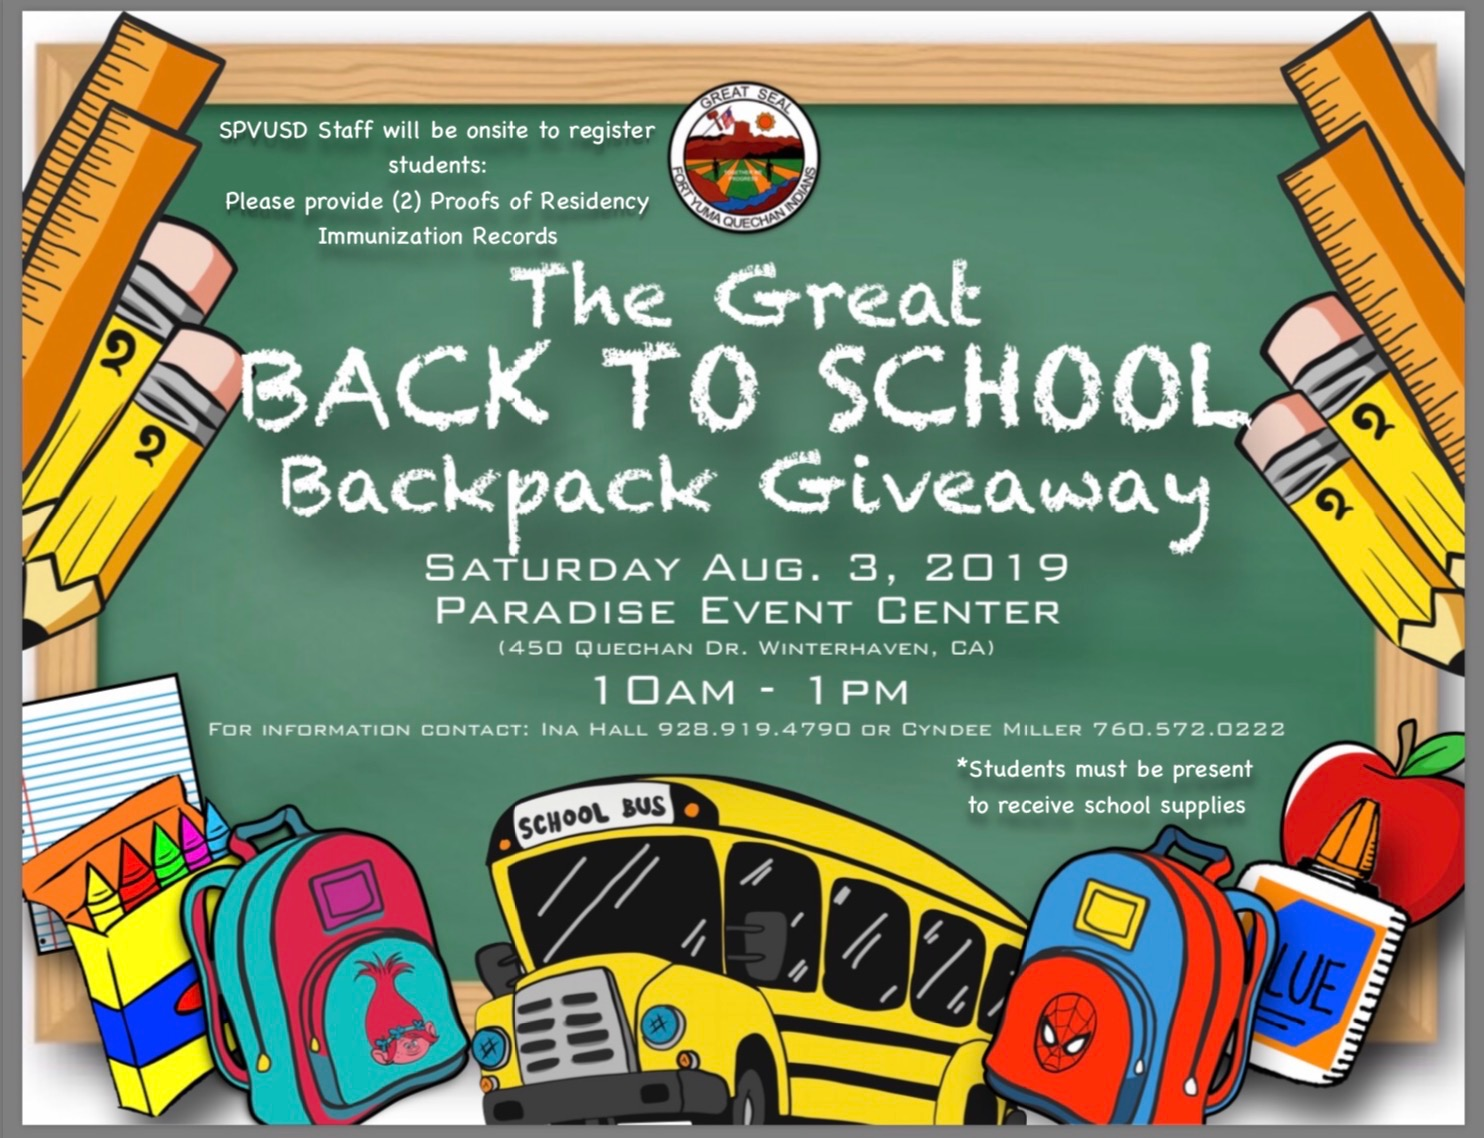 Back to school giveaway 2019 norfolk va